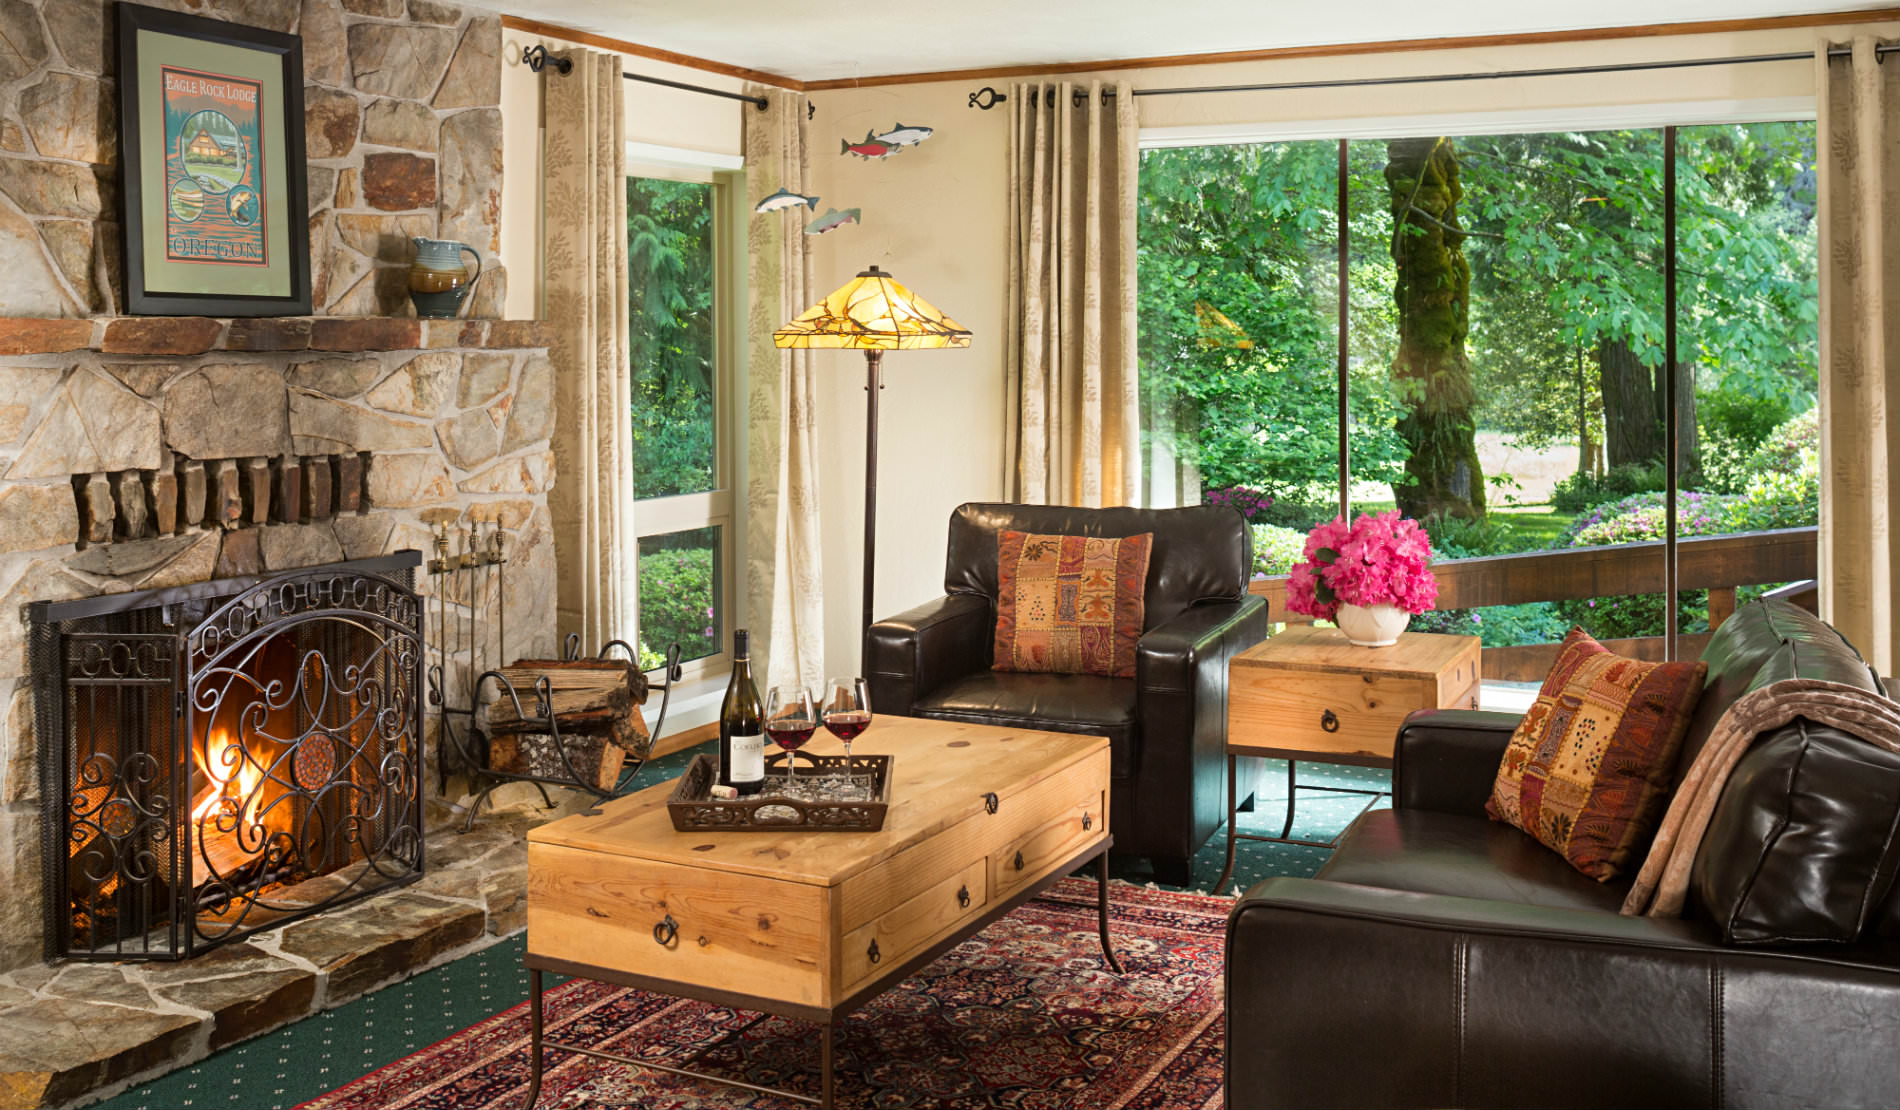 Large stone fireplace facing two leather club chairs with large windows viewing greenery outside.